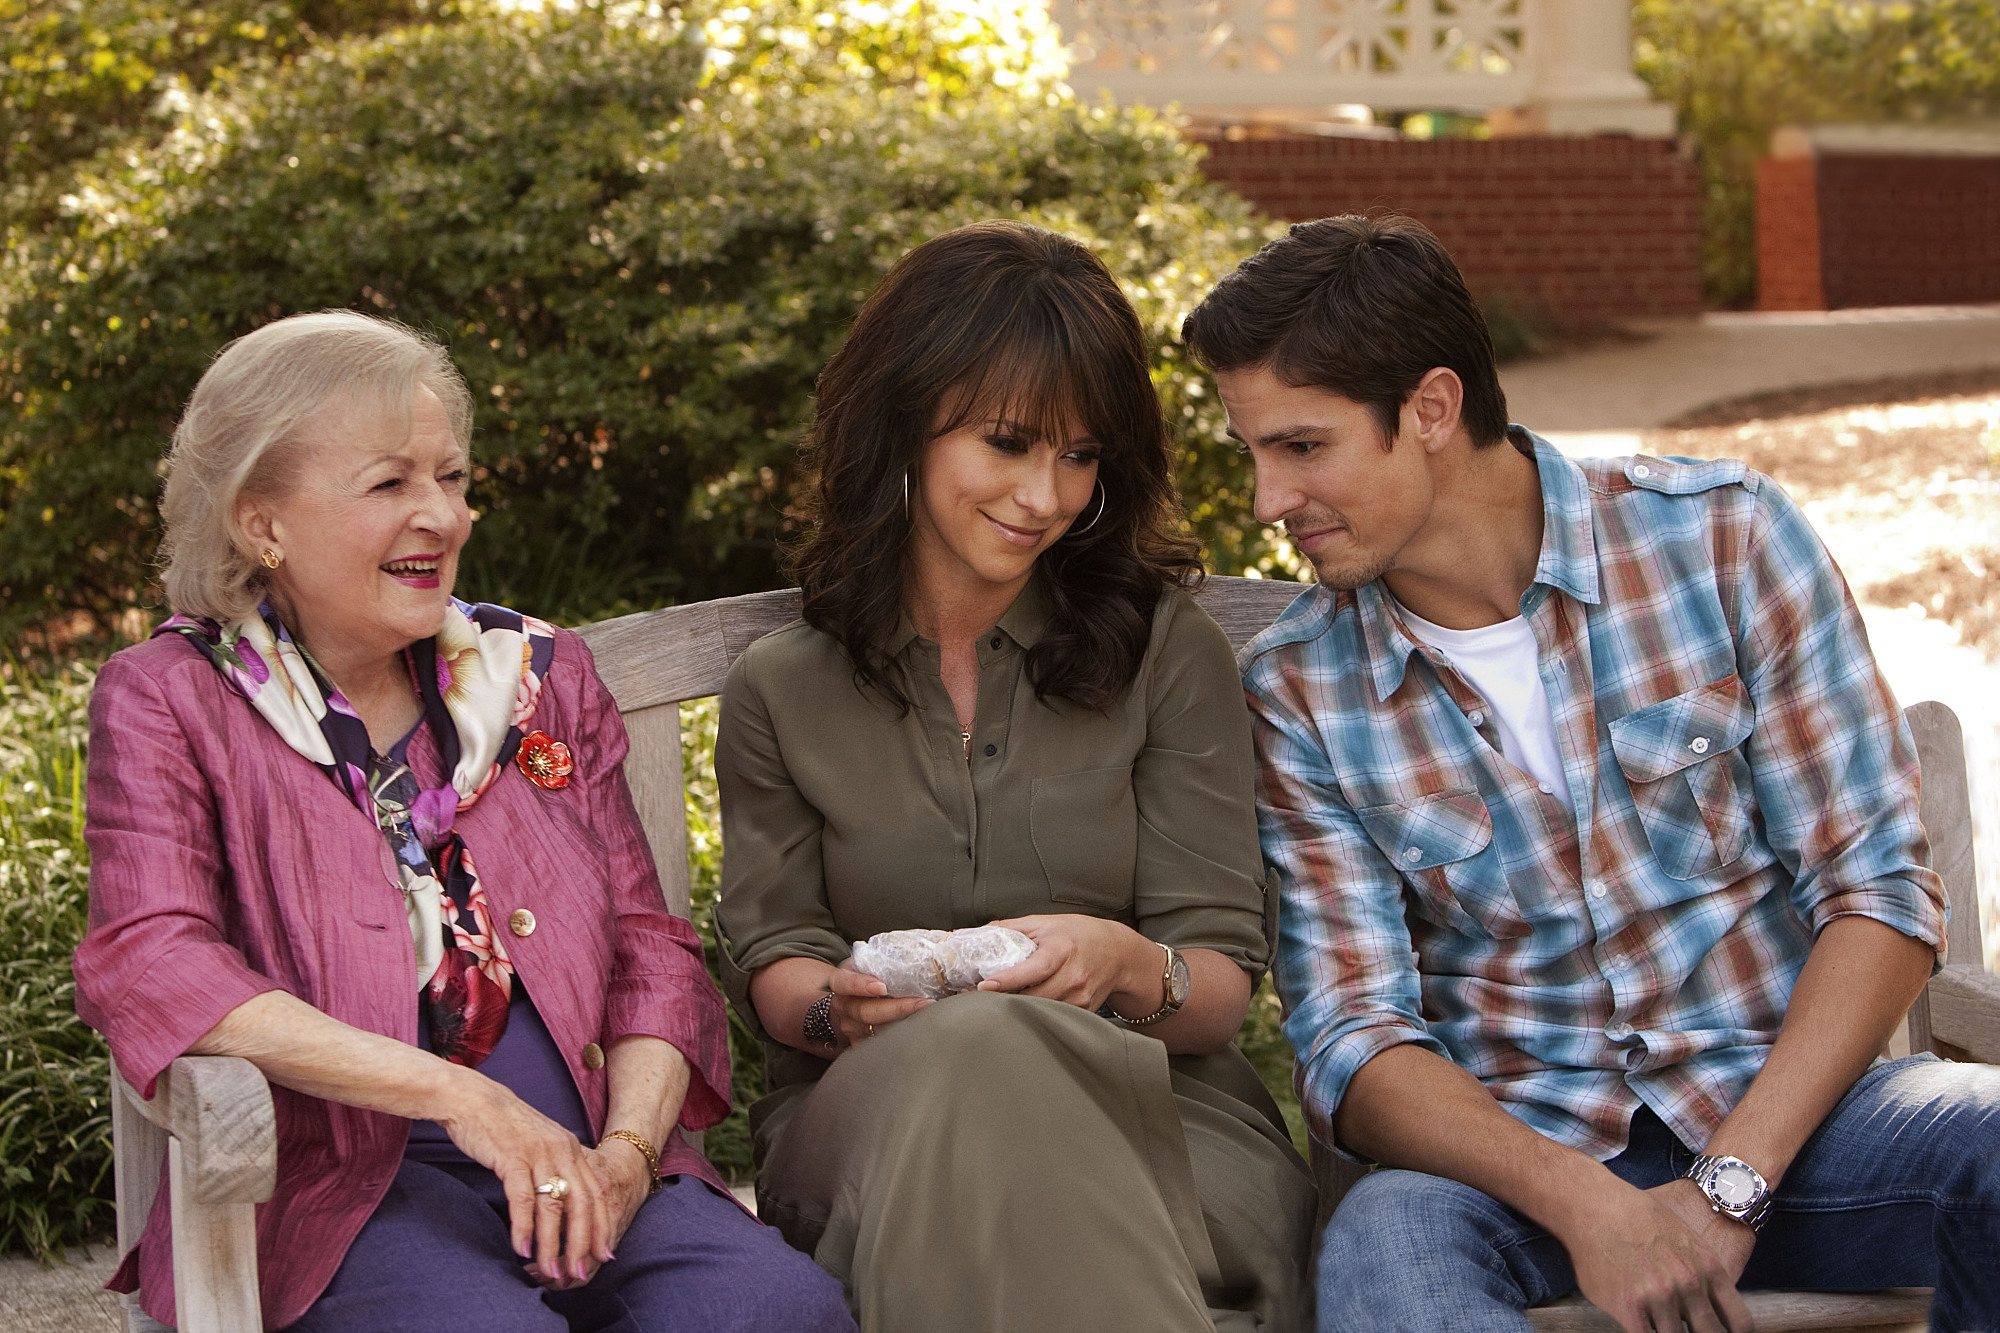 Jennifer Love Hewitt, Sean Faris, and Betty White in The Lost Valentine (2011)